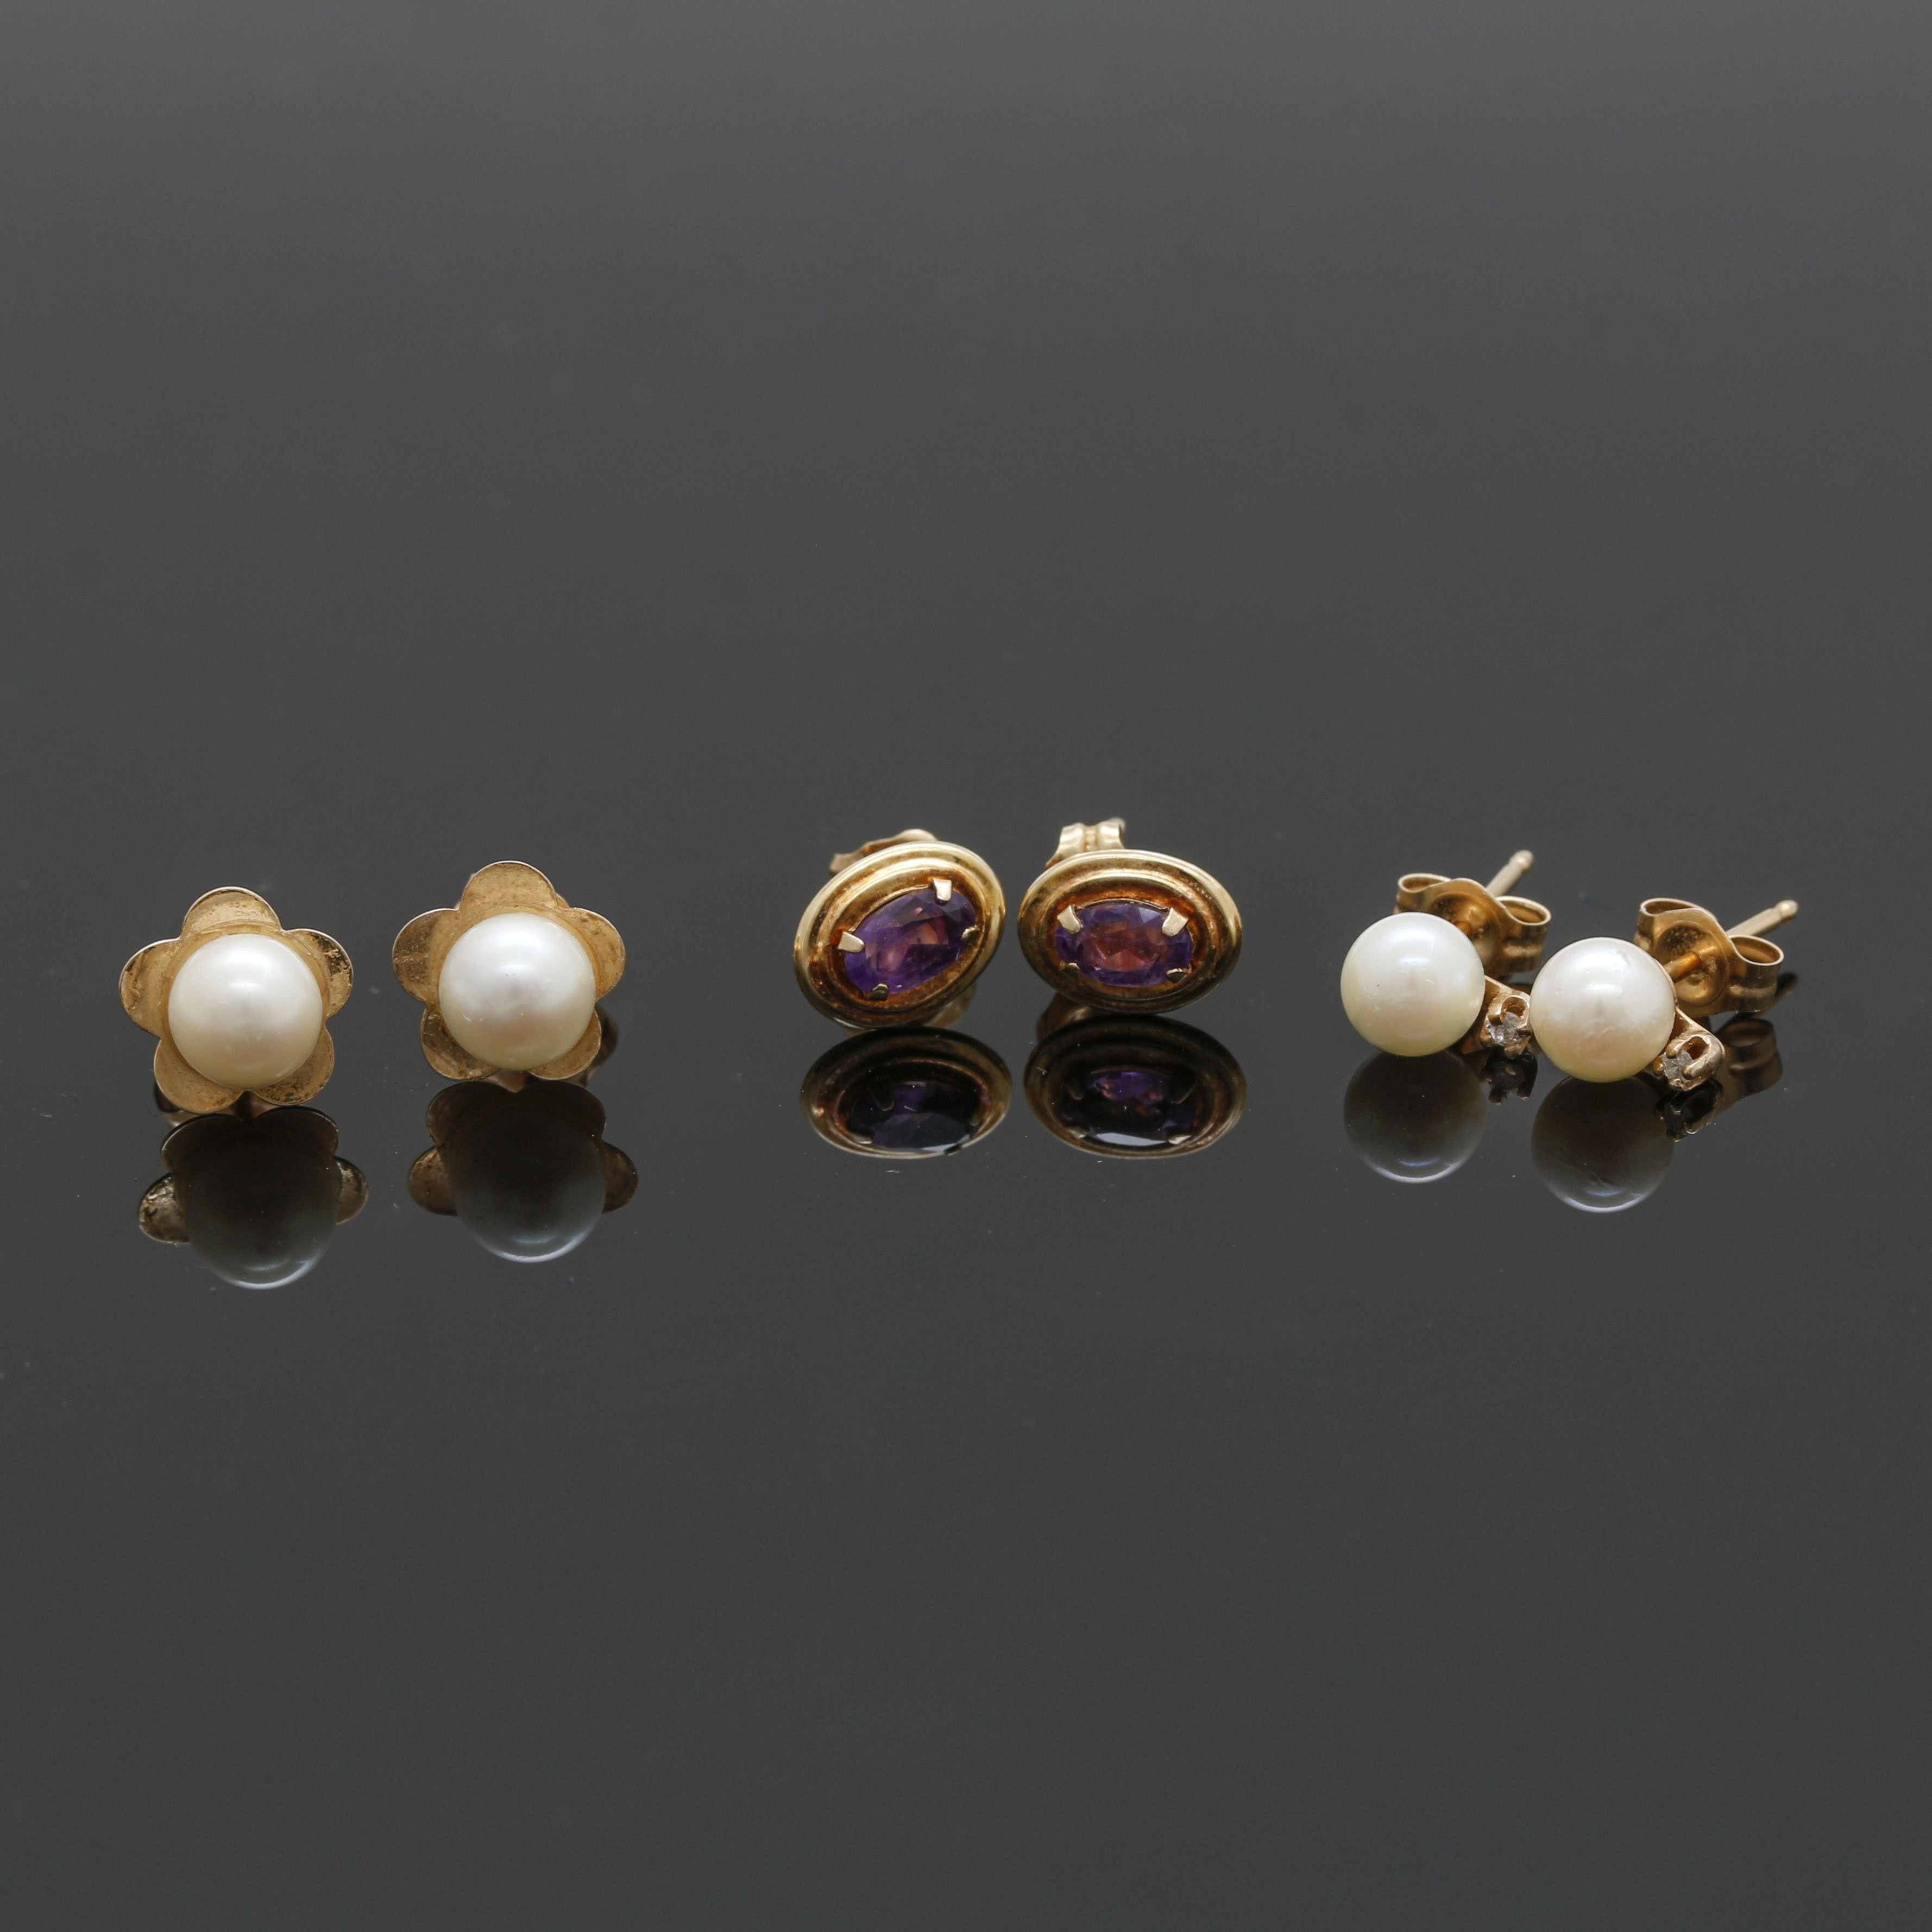 Assortment of 14K Yellow Gold Pearl and Gemstone Stud Earrings